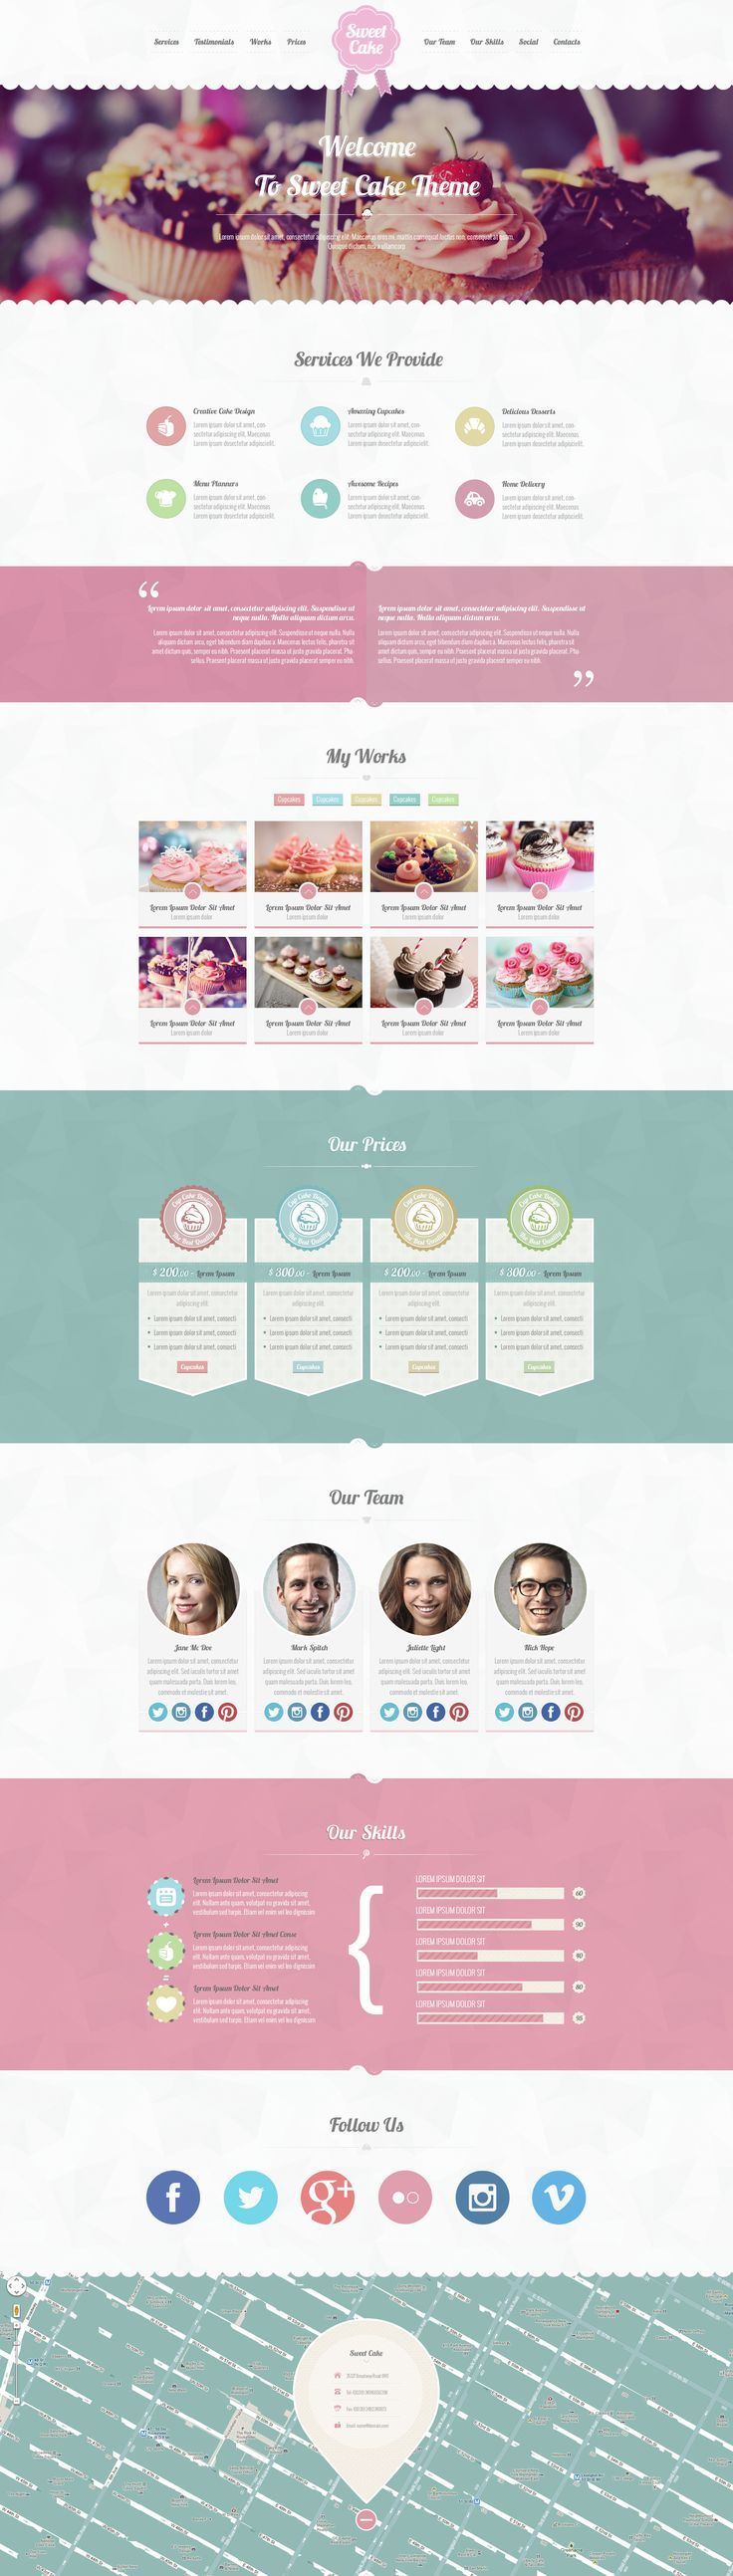 best web design images on pinterest graphics website and